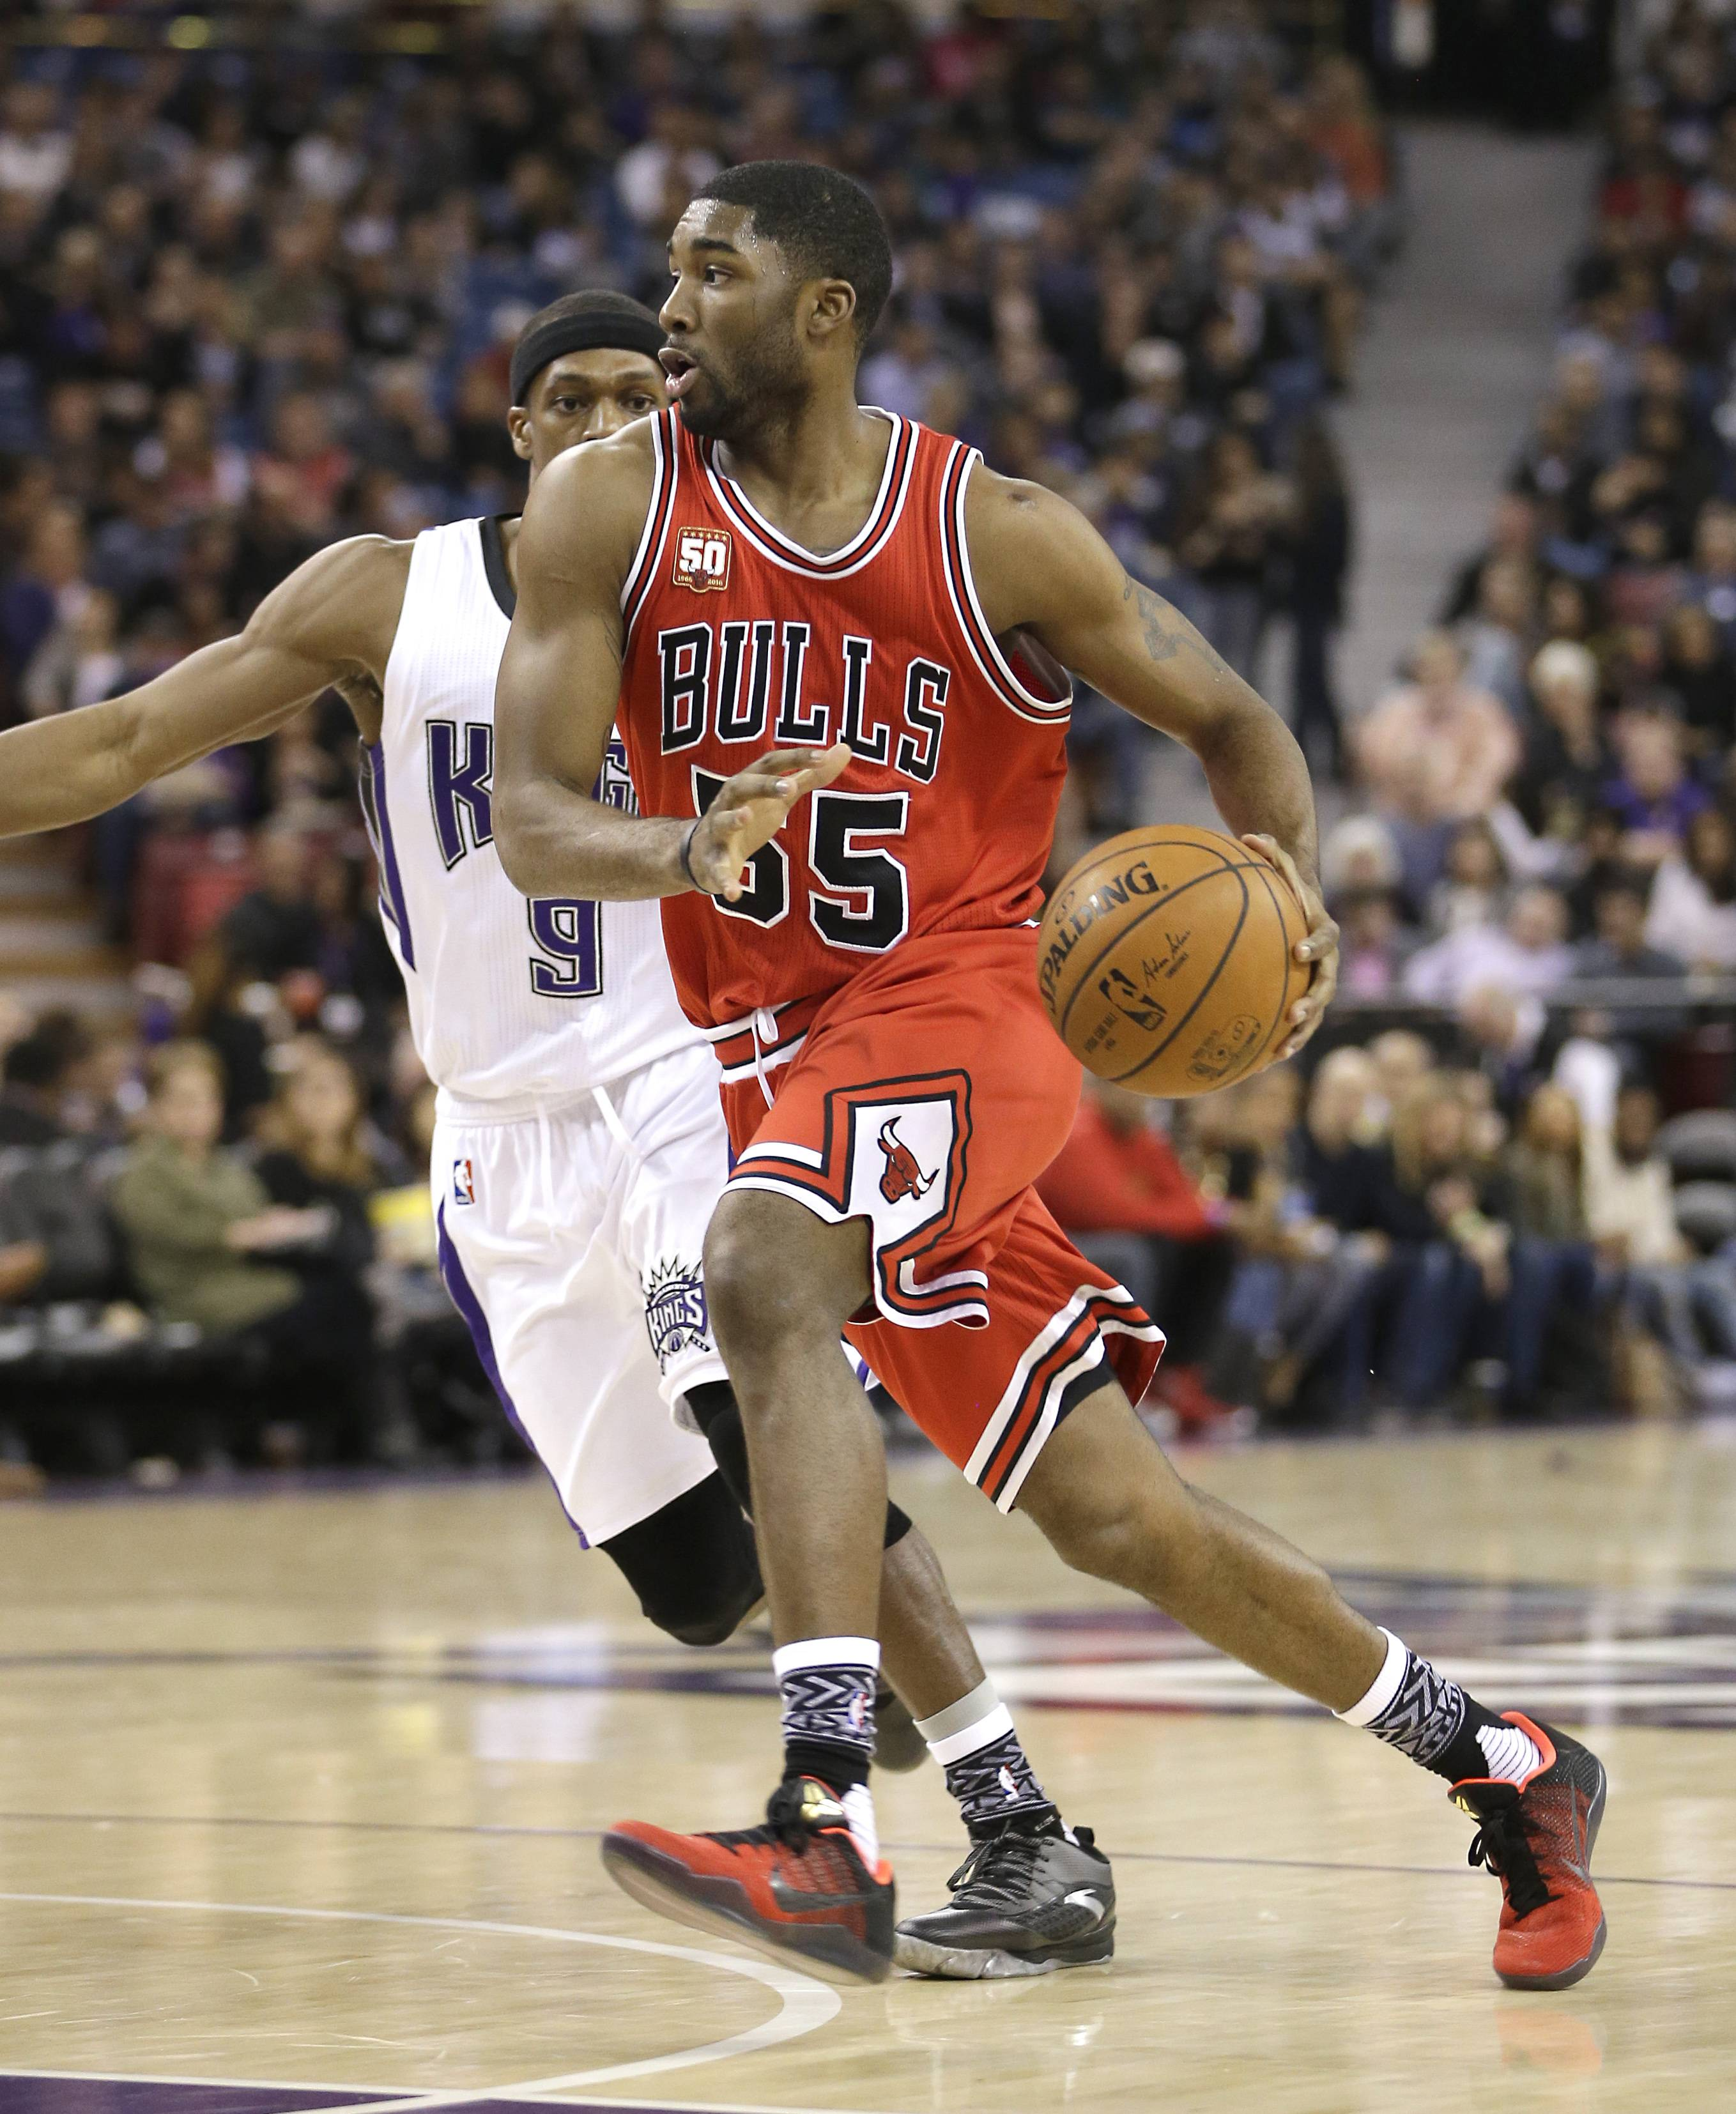 Chicago Bulls guard E'Twaun Moore, right, drives to the basket against Sacramento Kings guard Rajon Rondo during the first quarter of an NBA basketball game in Wednesday, Feb. 3, 2016, in Sacramento, Calif. (AP Photo/Rich Pedroncelli)